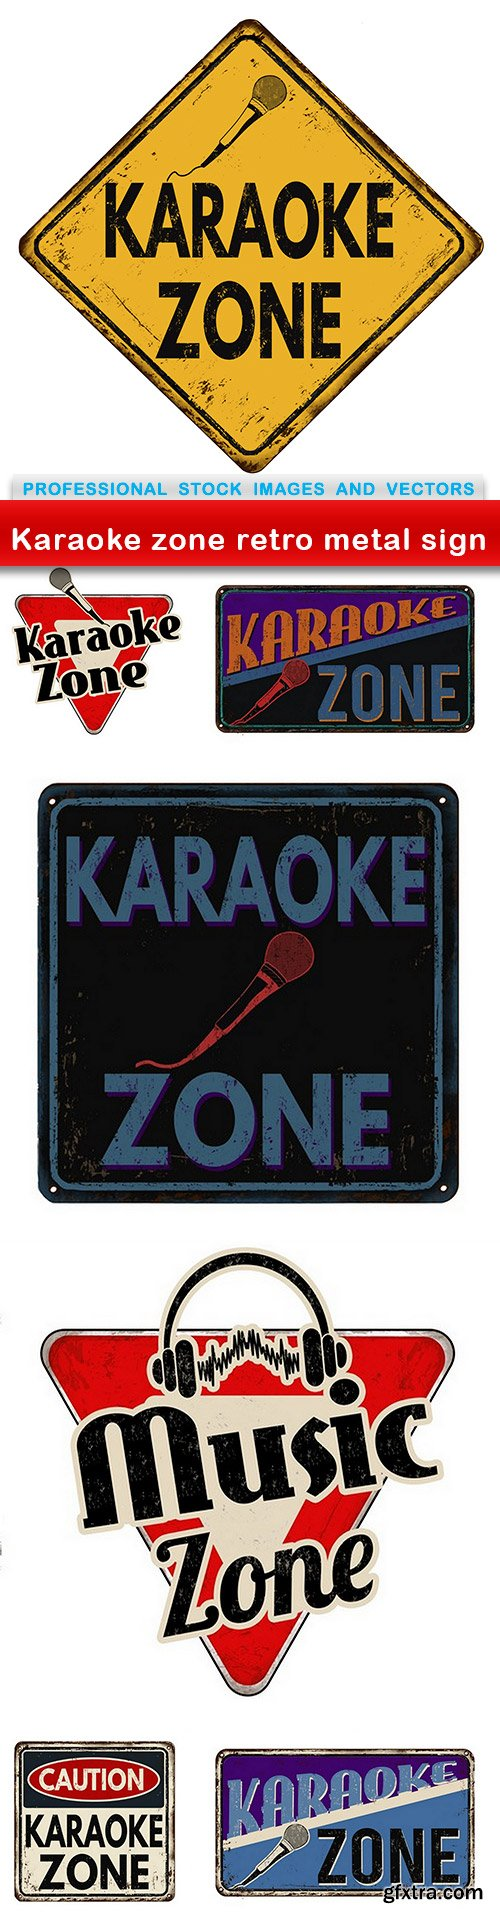 Karaoke zone retro metal sign - 7 EPS